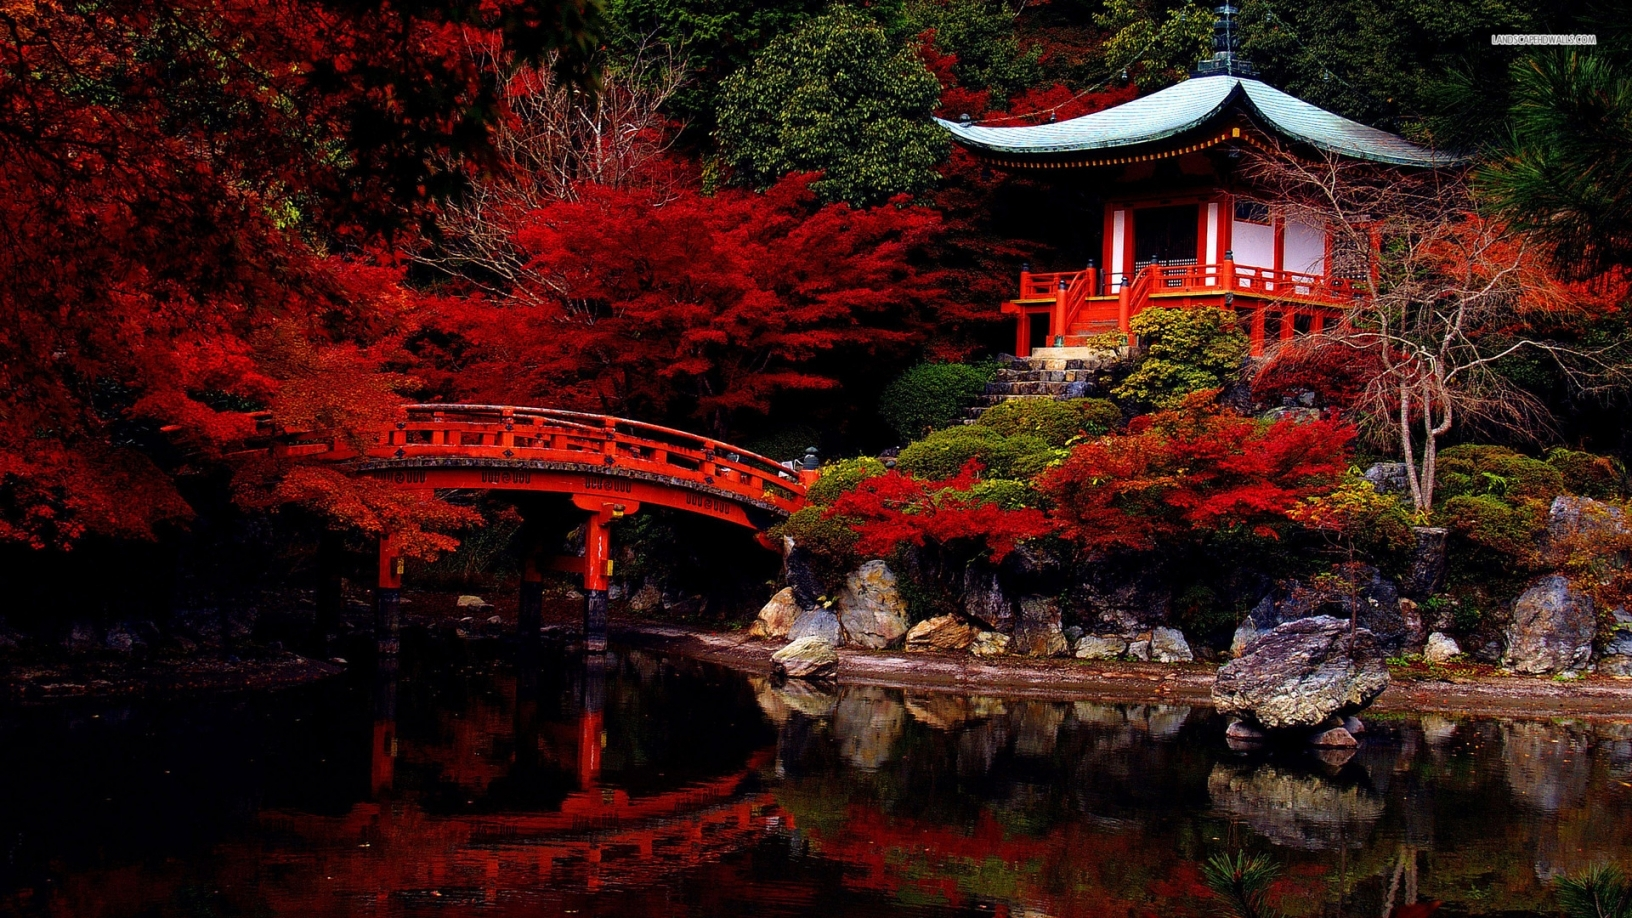 japanese-tea-garden-wallpaper-free-nature-wallpaper-dudaite-regarding- japanese-tea-garden-wallpaper